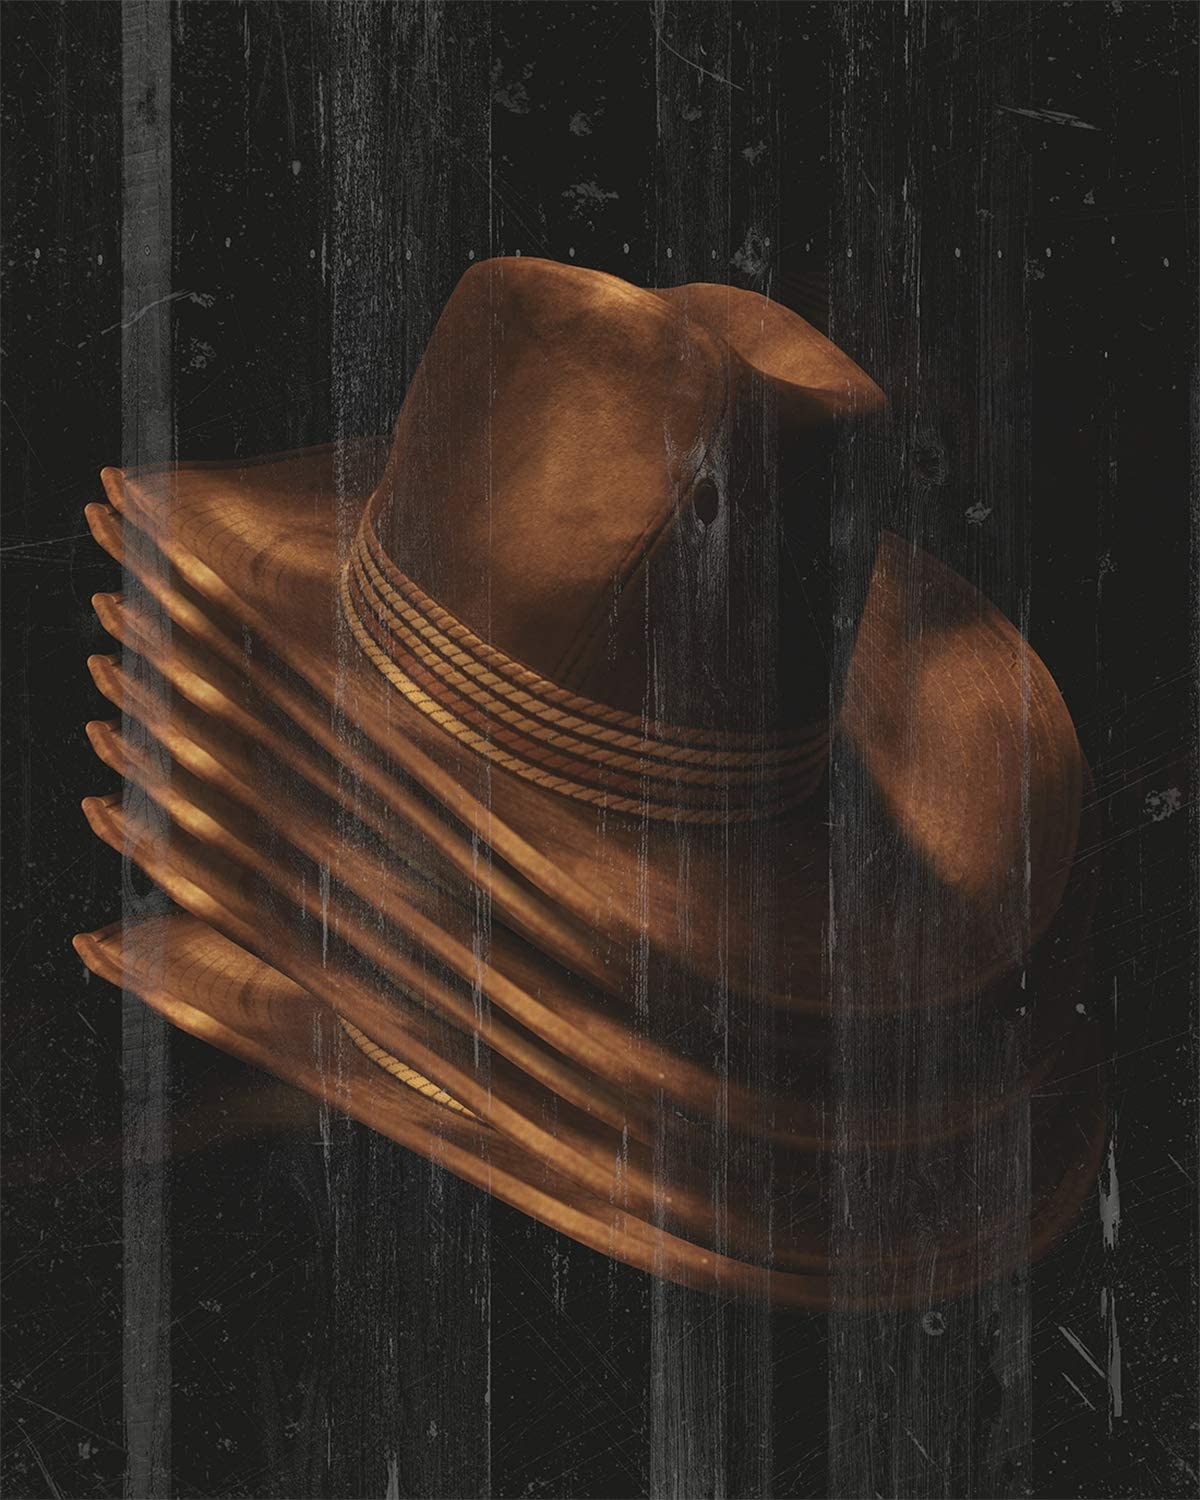 Cowboy Hats - Wall Decor Art Print on a dark printed woodgrain background - 8x10 unframed Western-themed print - great gift for relatives and friends